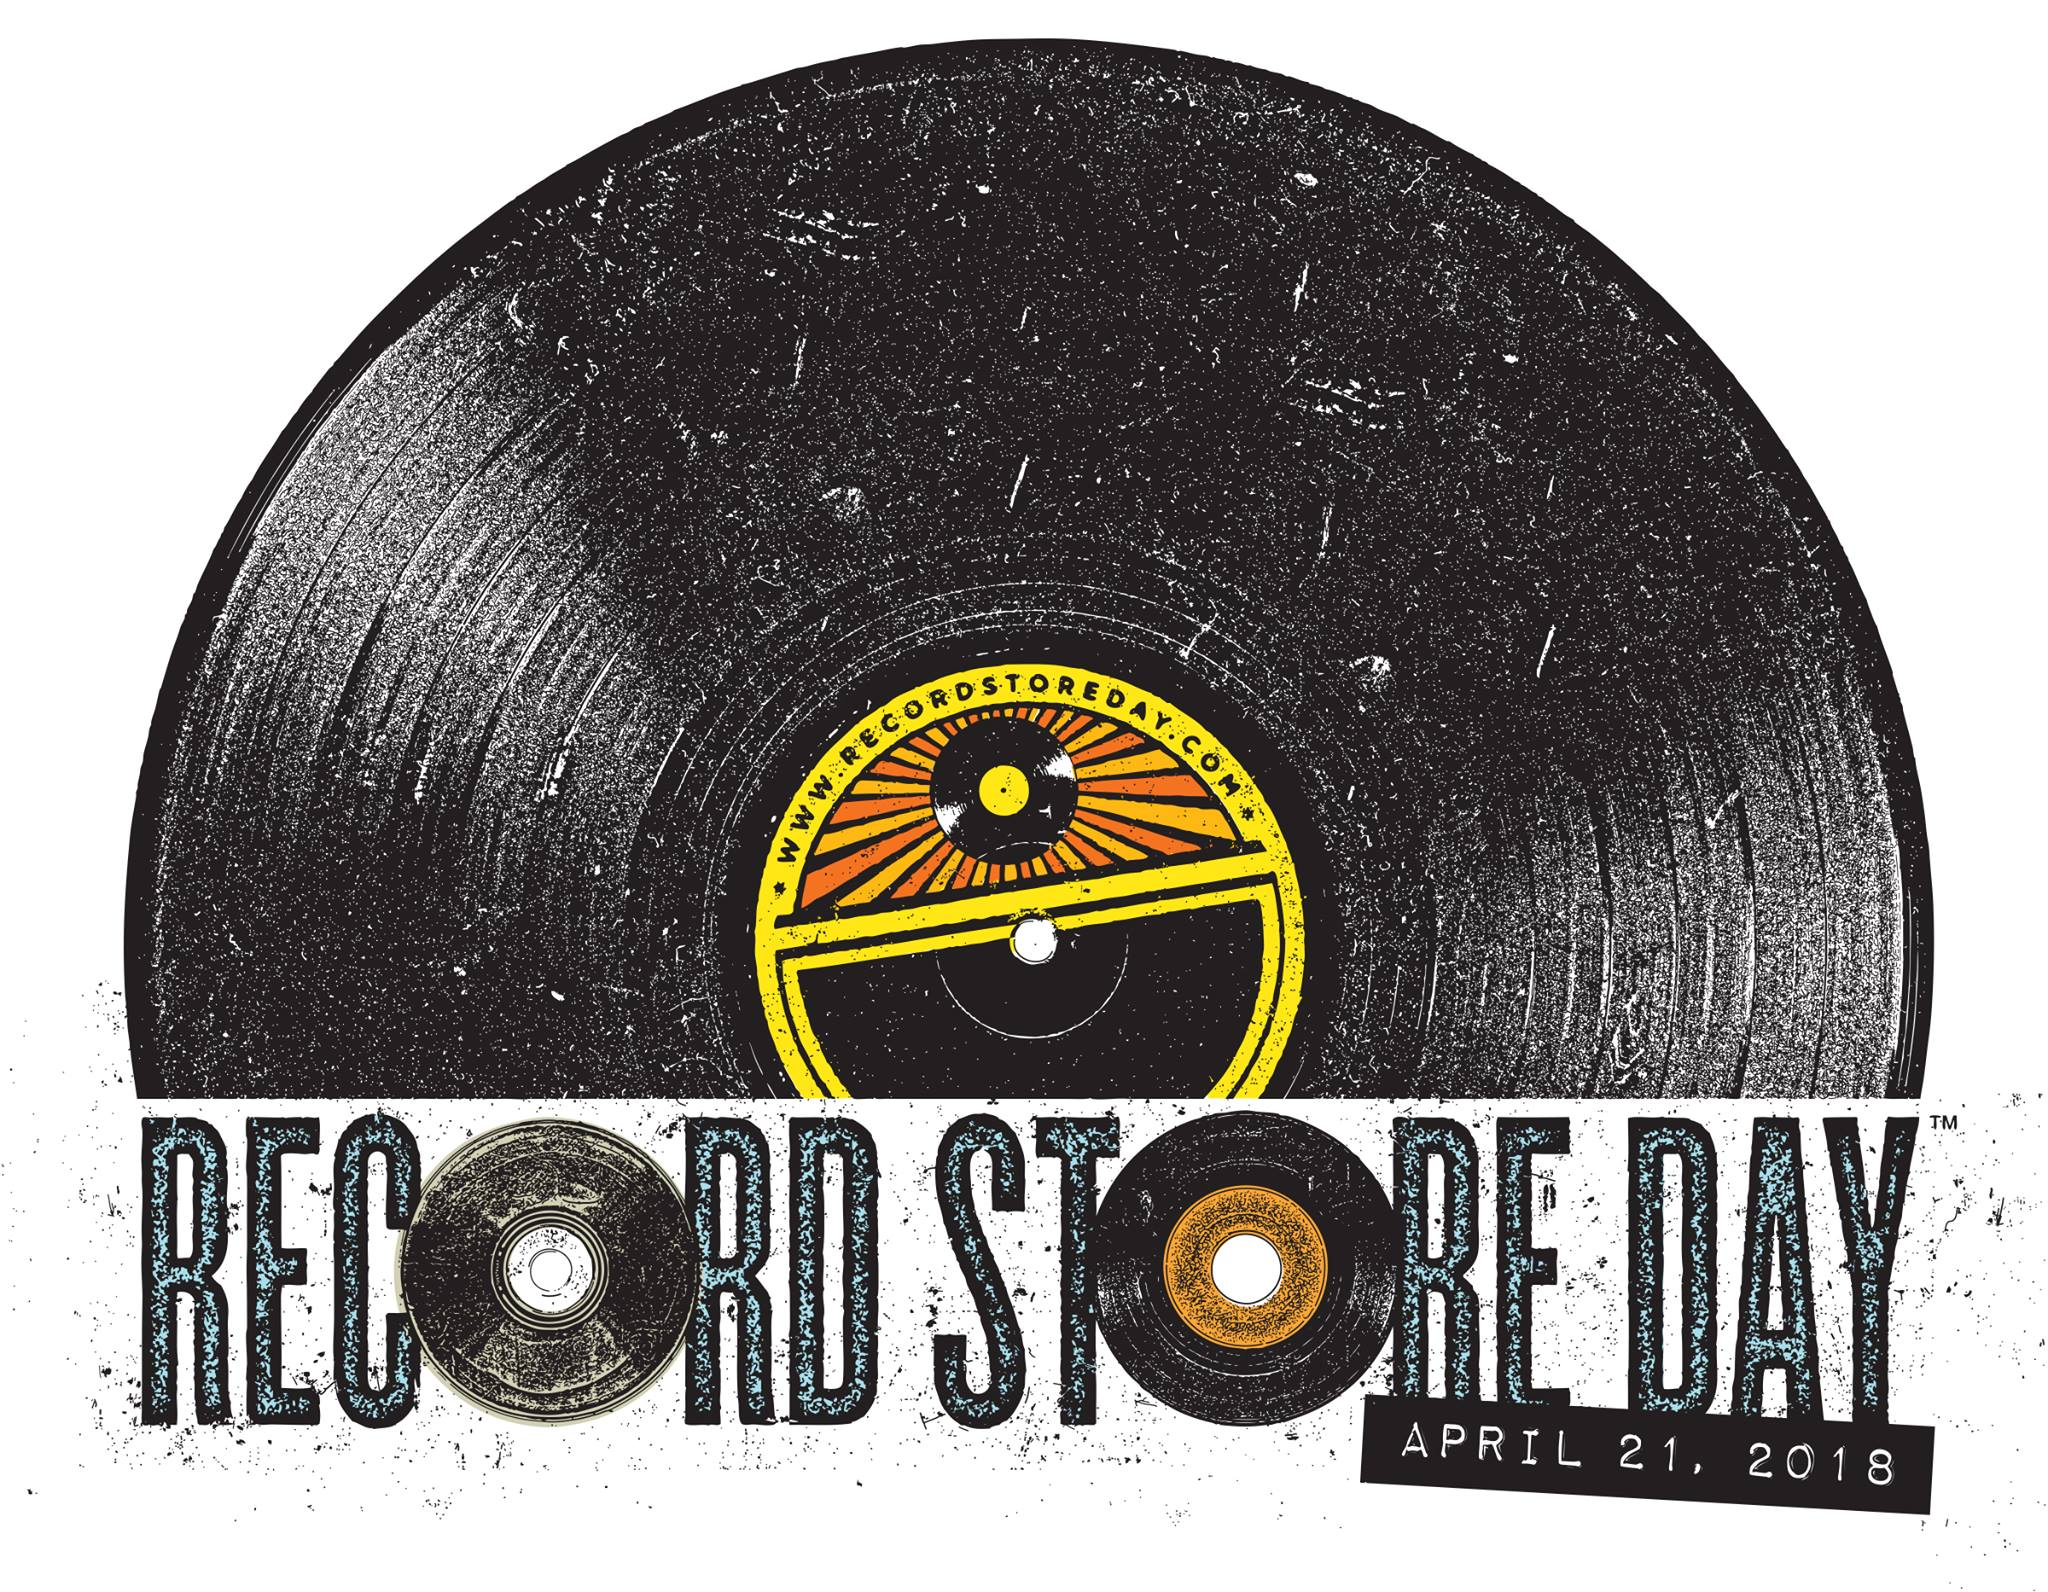 New record releases 2018